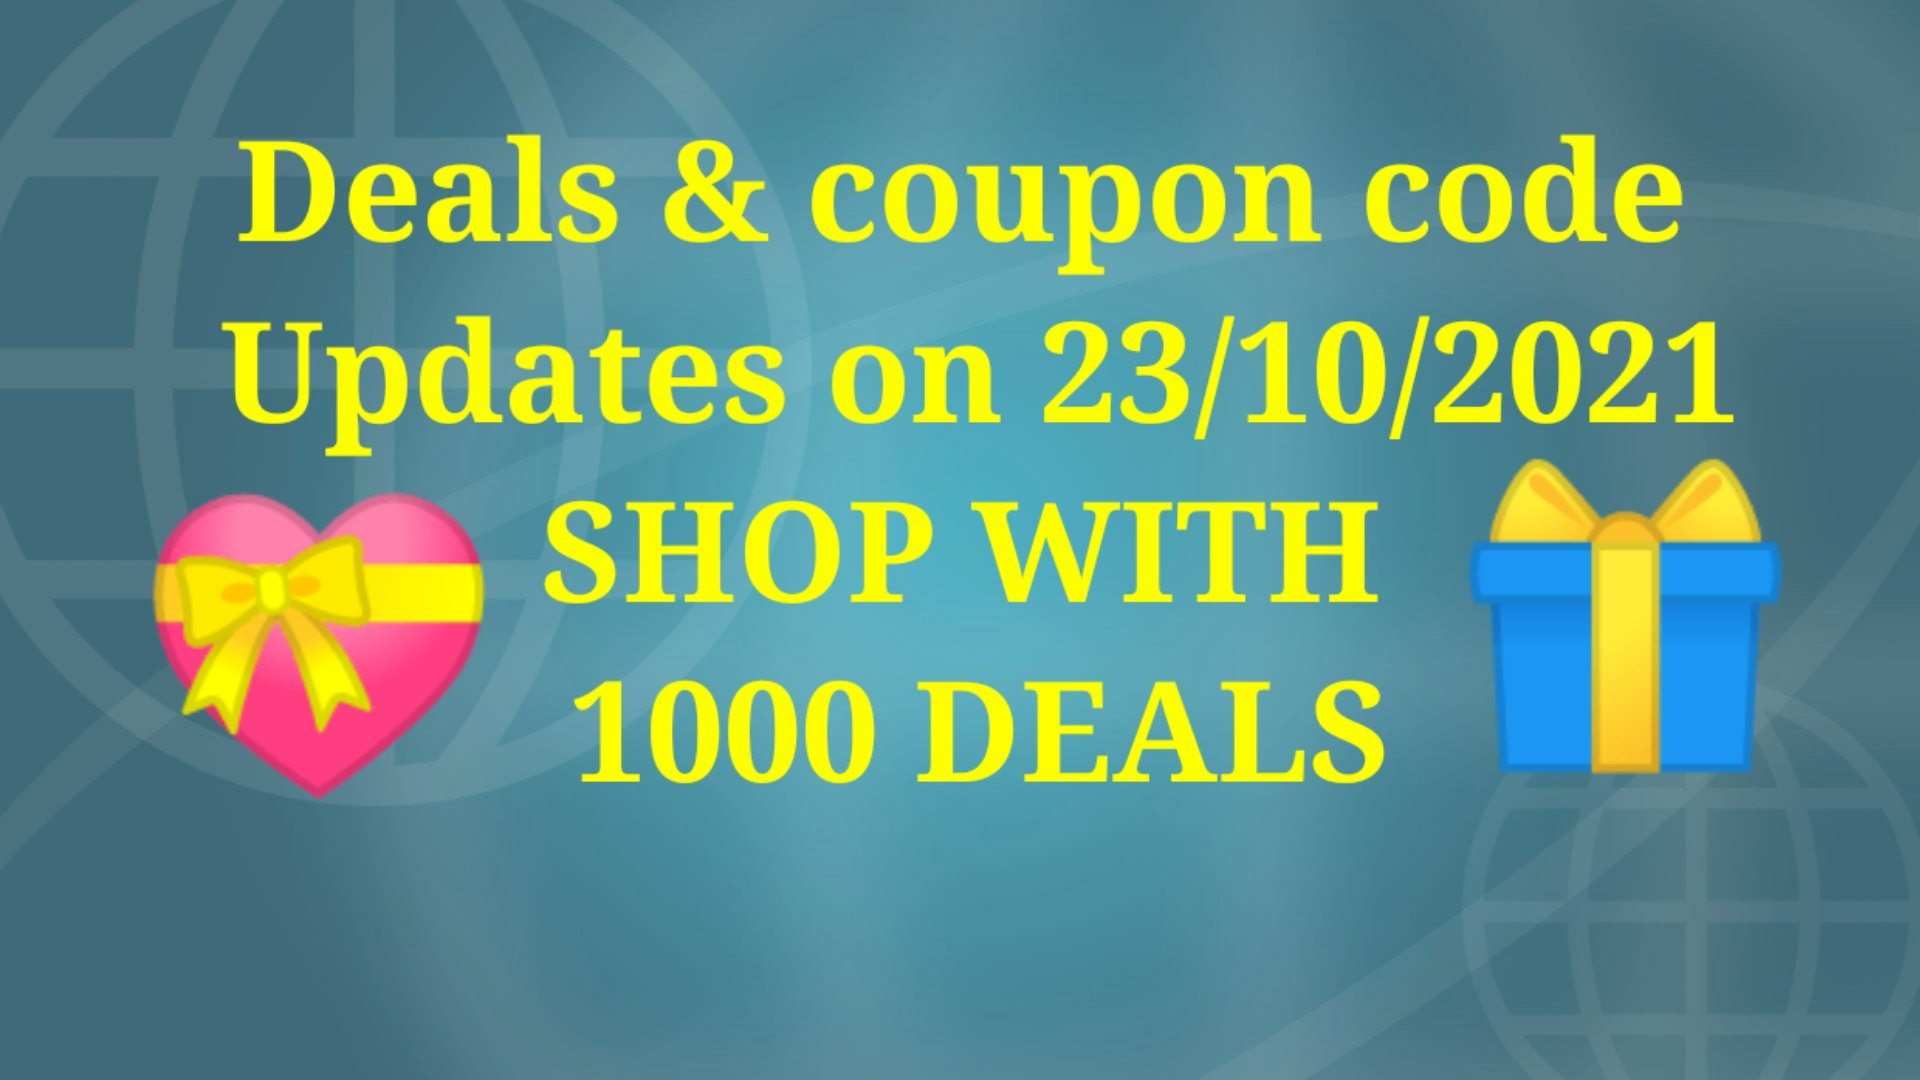 Best deals & coupon code of the day updates on 23/10/2021